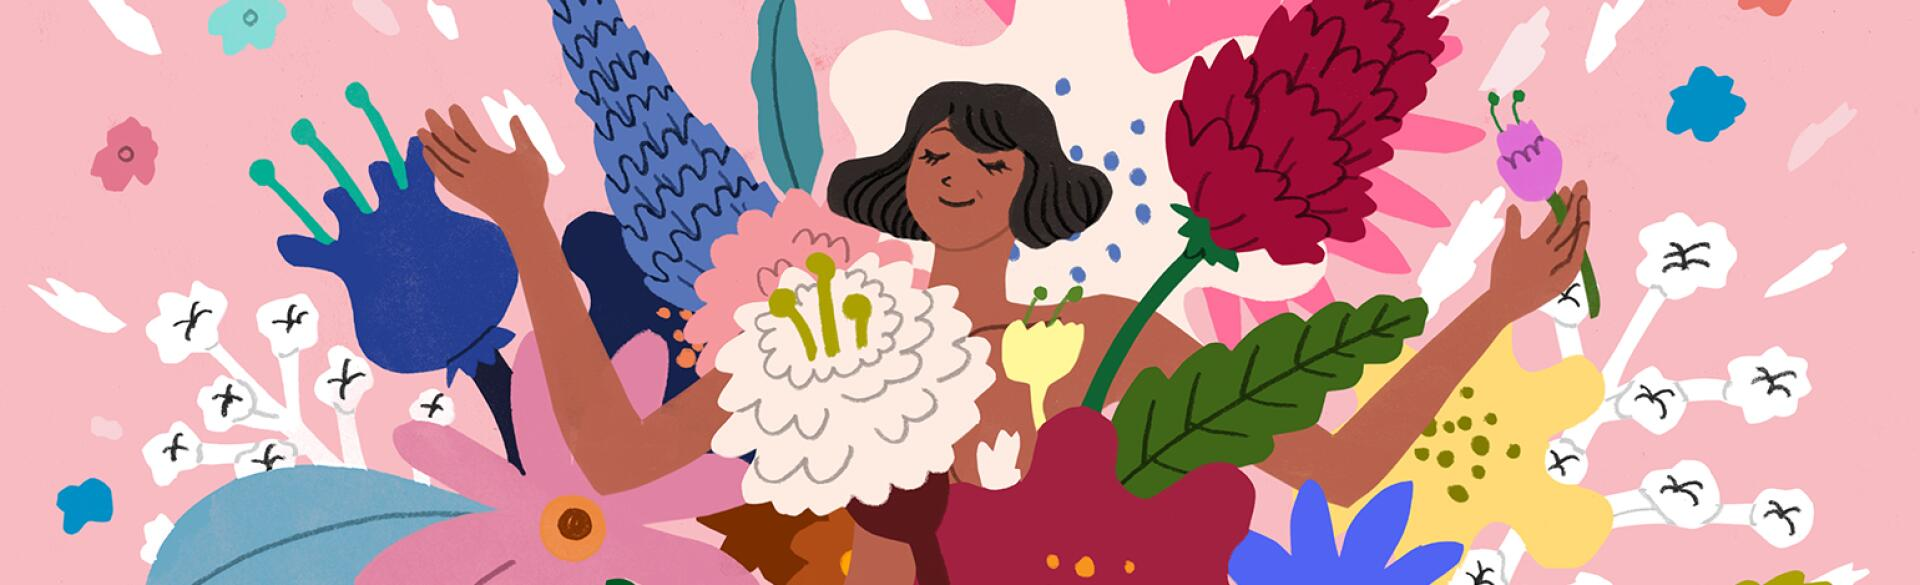 illustration of generation x woman smiling with flowers around her